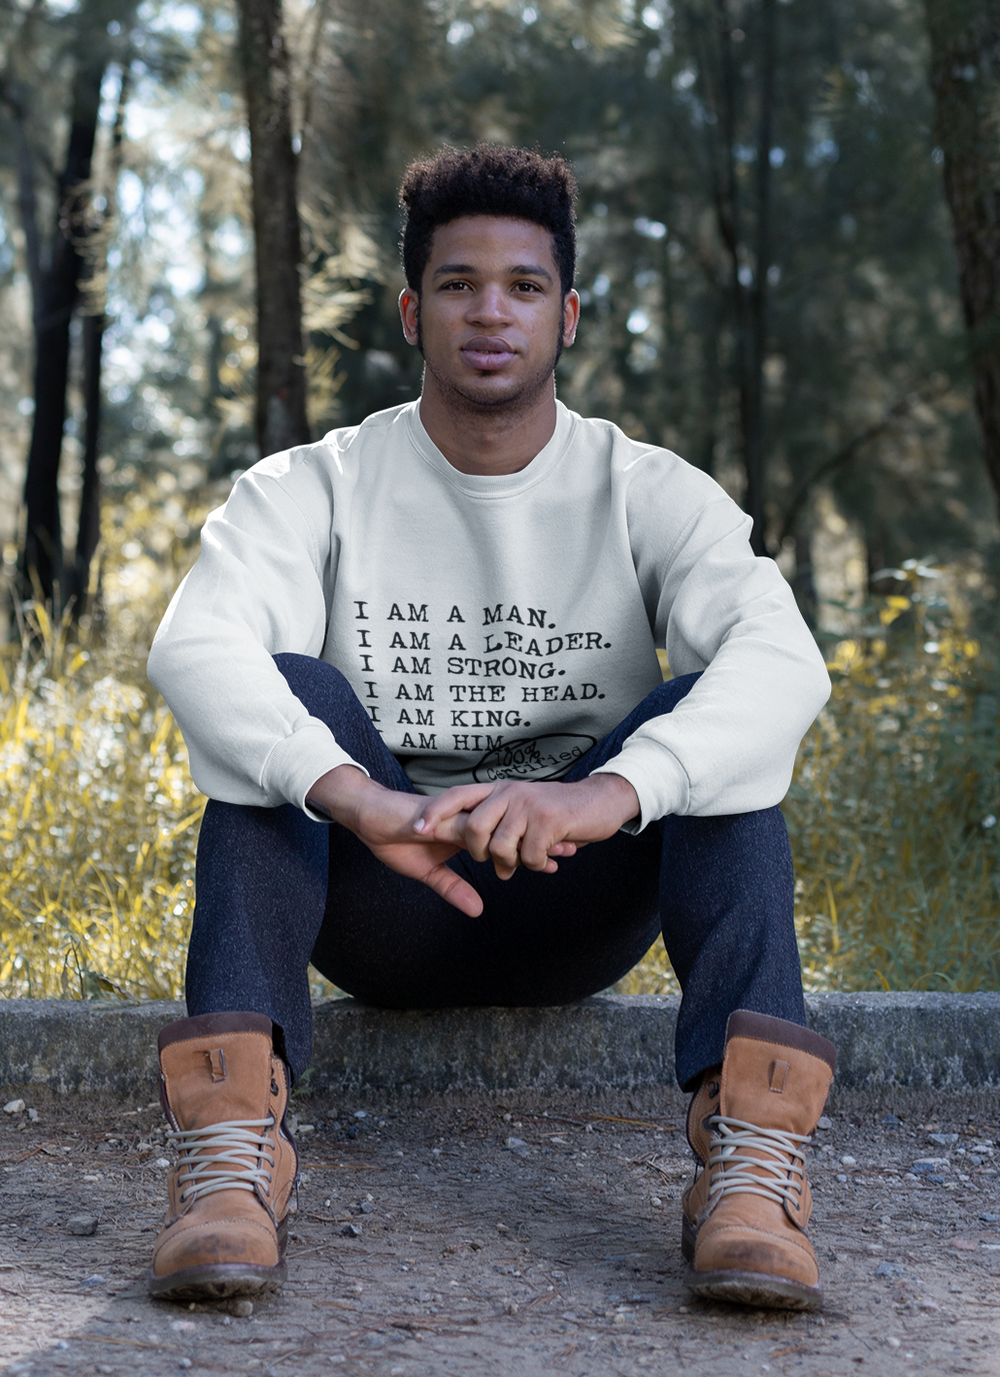 I AM A MAN Casual Mens Crewneck Sweatshirt - I AM HER Apparel